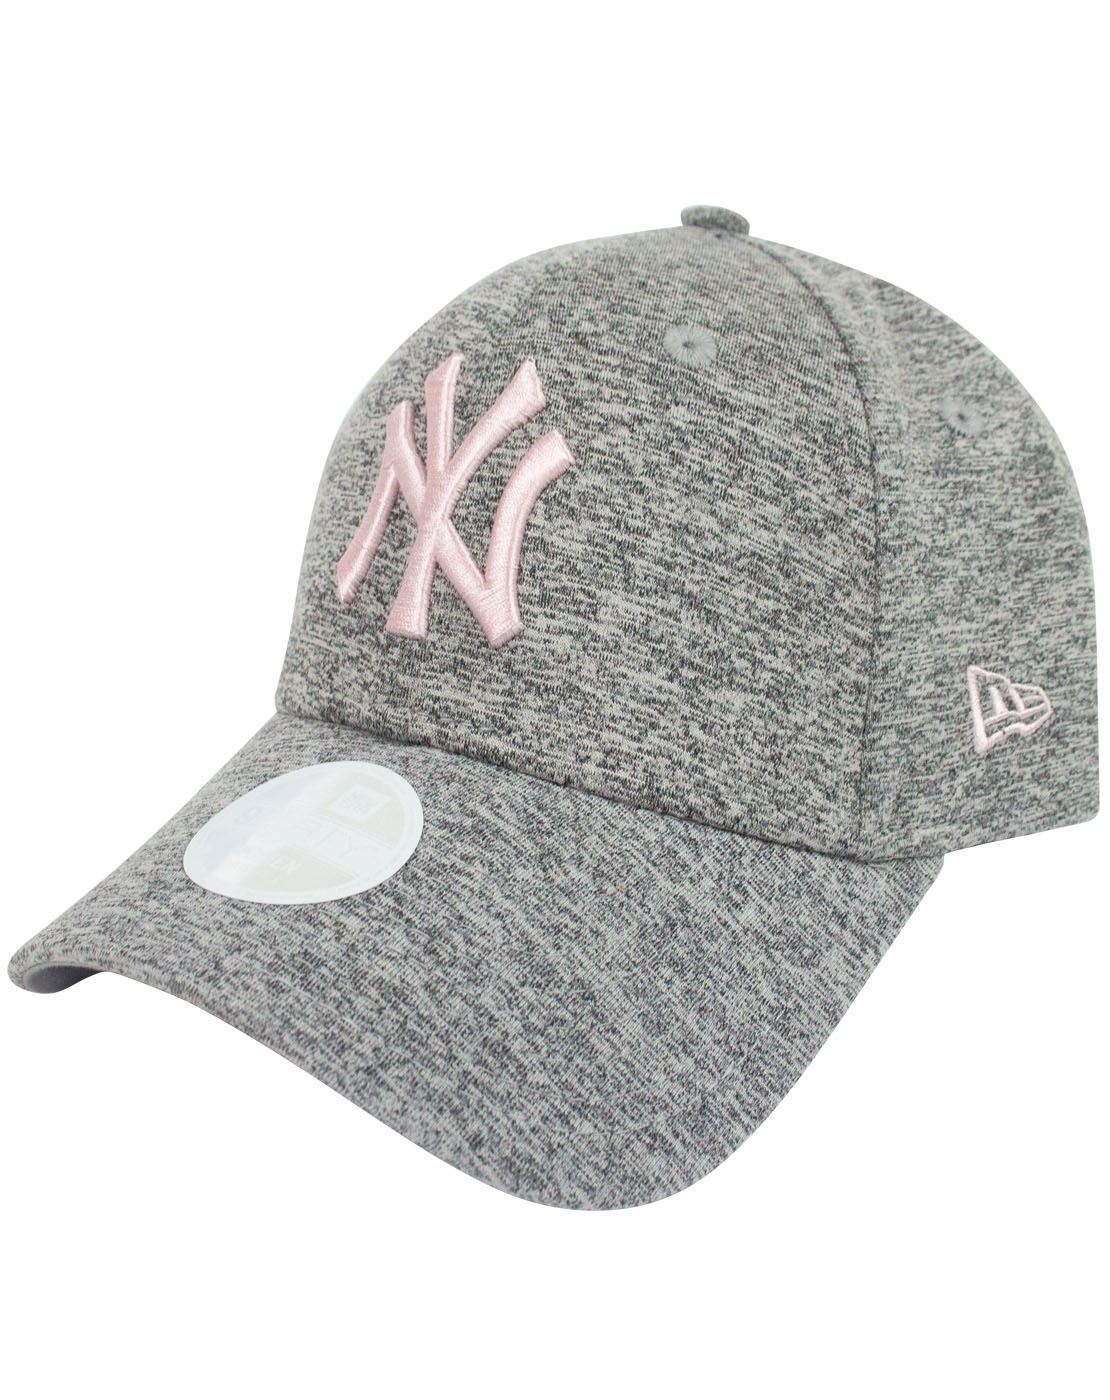 00db6163380 New Era 9Forty MLB New York Yankees Tech Jersey Pink Women s Cap – Vanilla  Underground